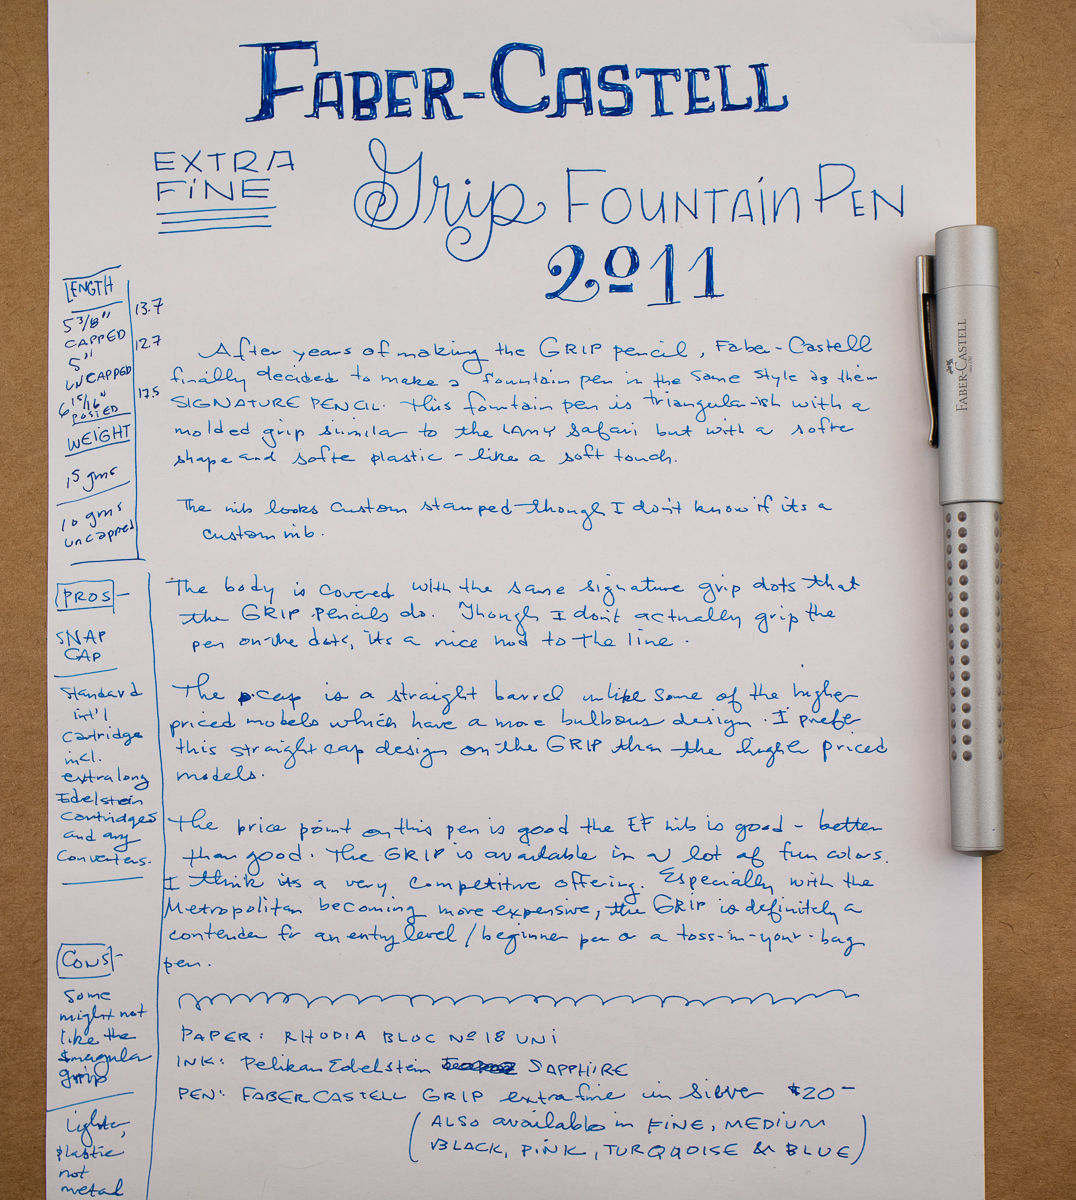 Faber-Castell Gripp 2011 Fountain Pen writing sample